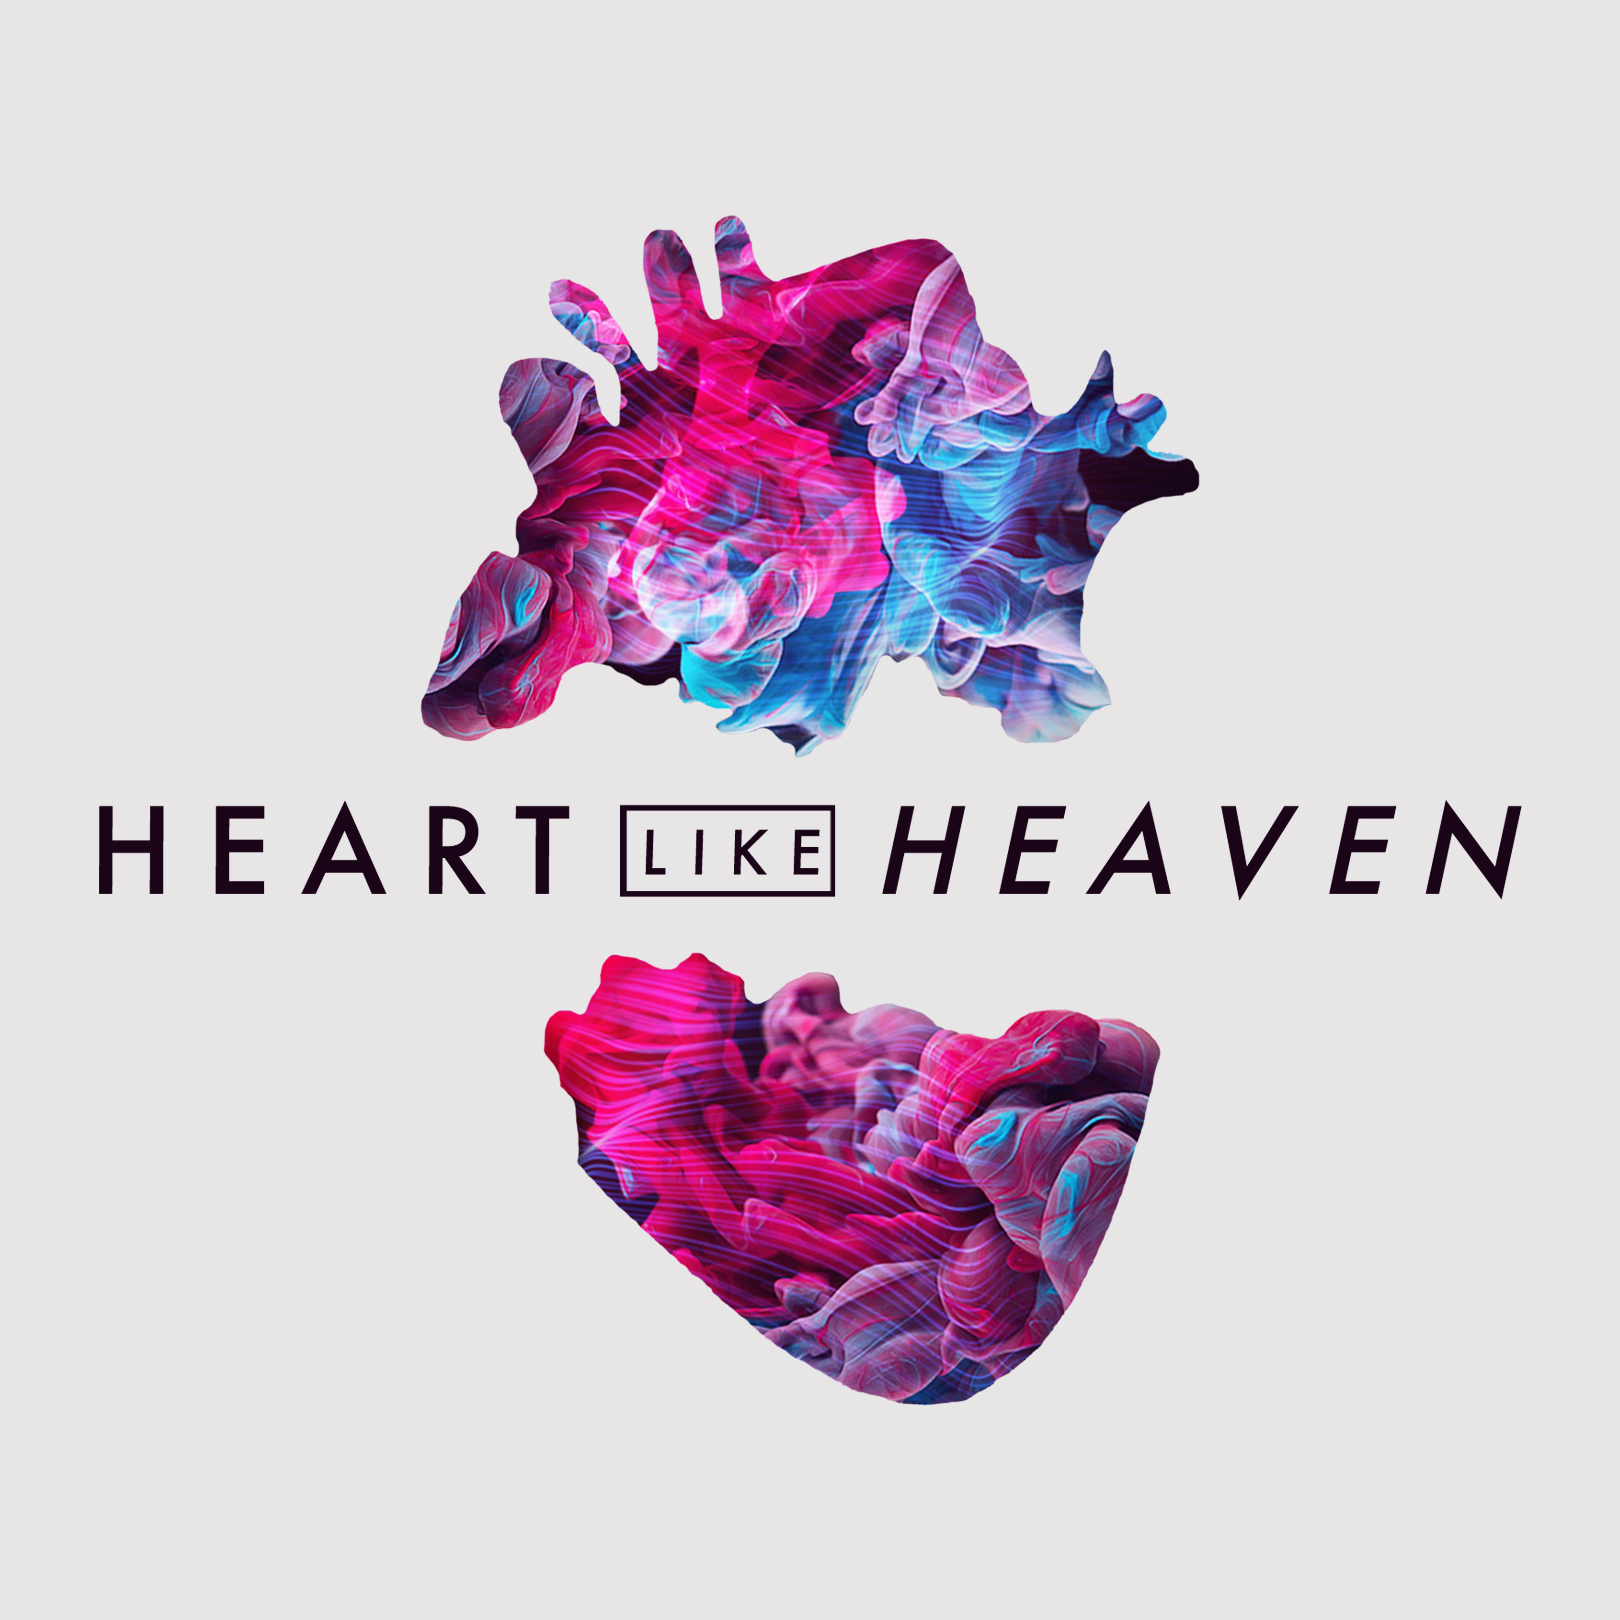 Heart Like Heaven – Week Two